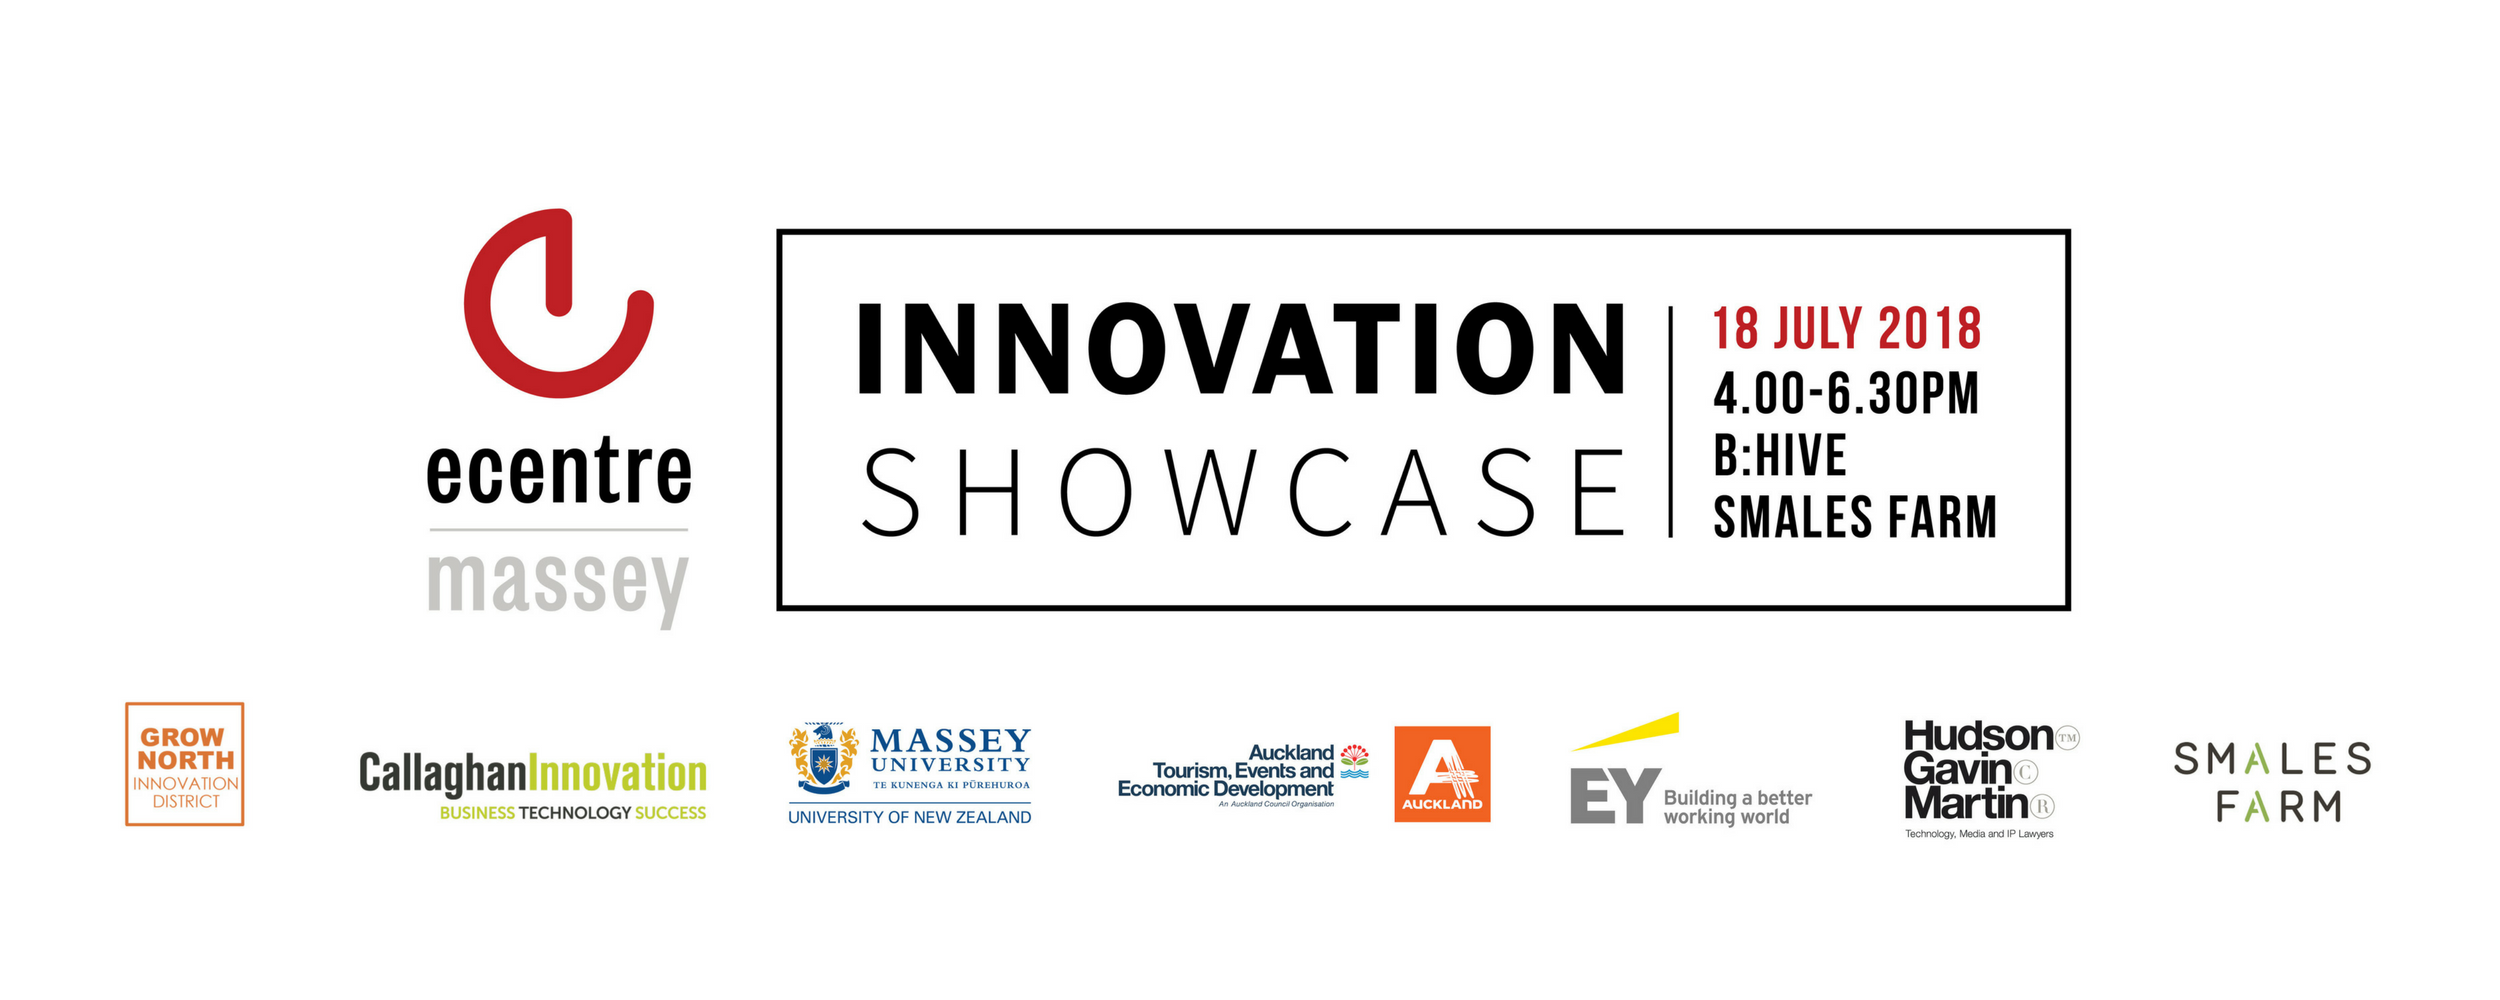 ecentre innovation showcase.png